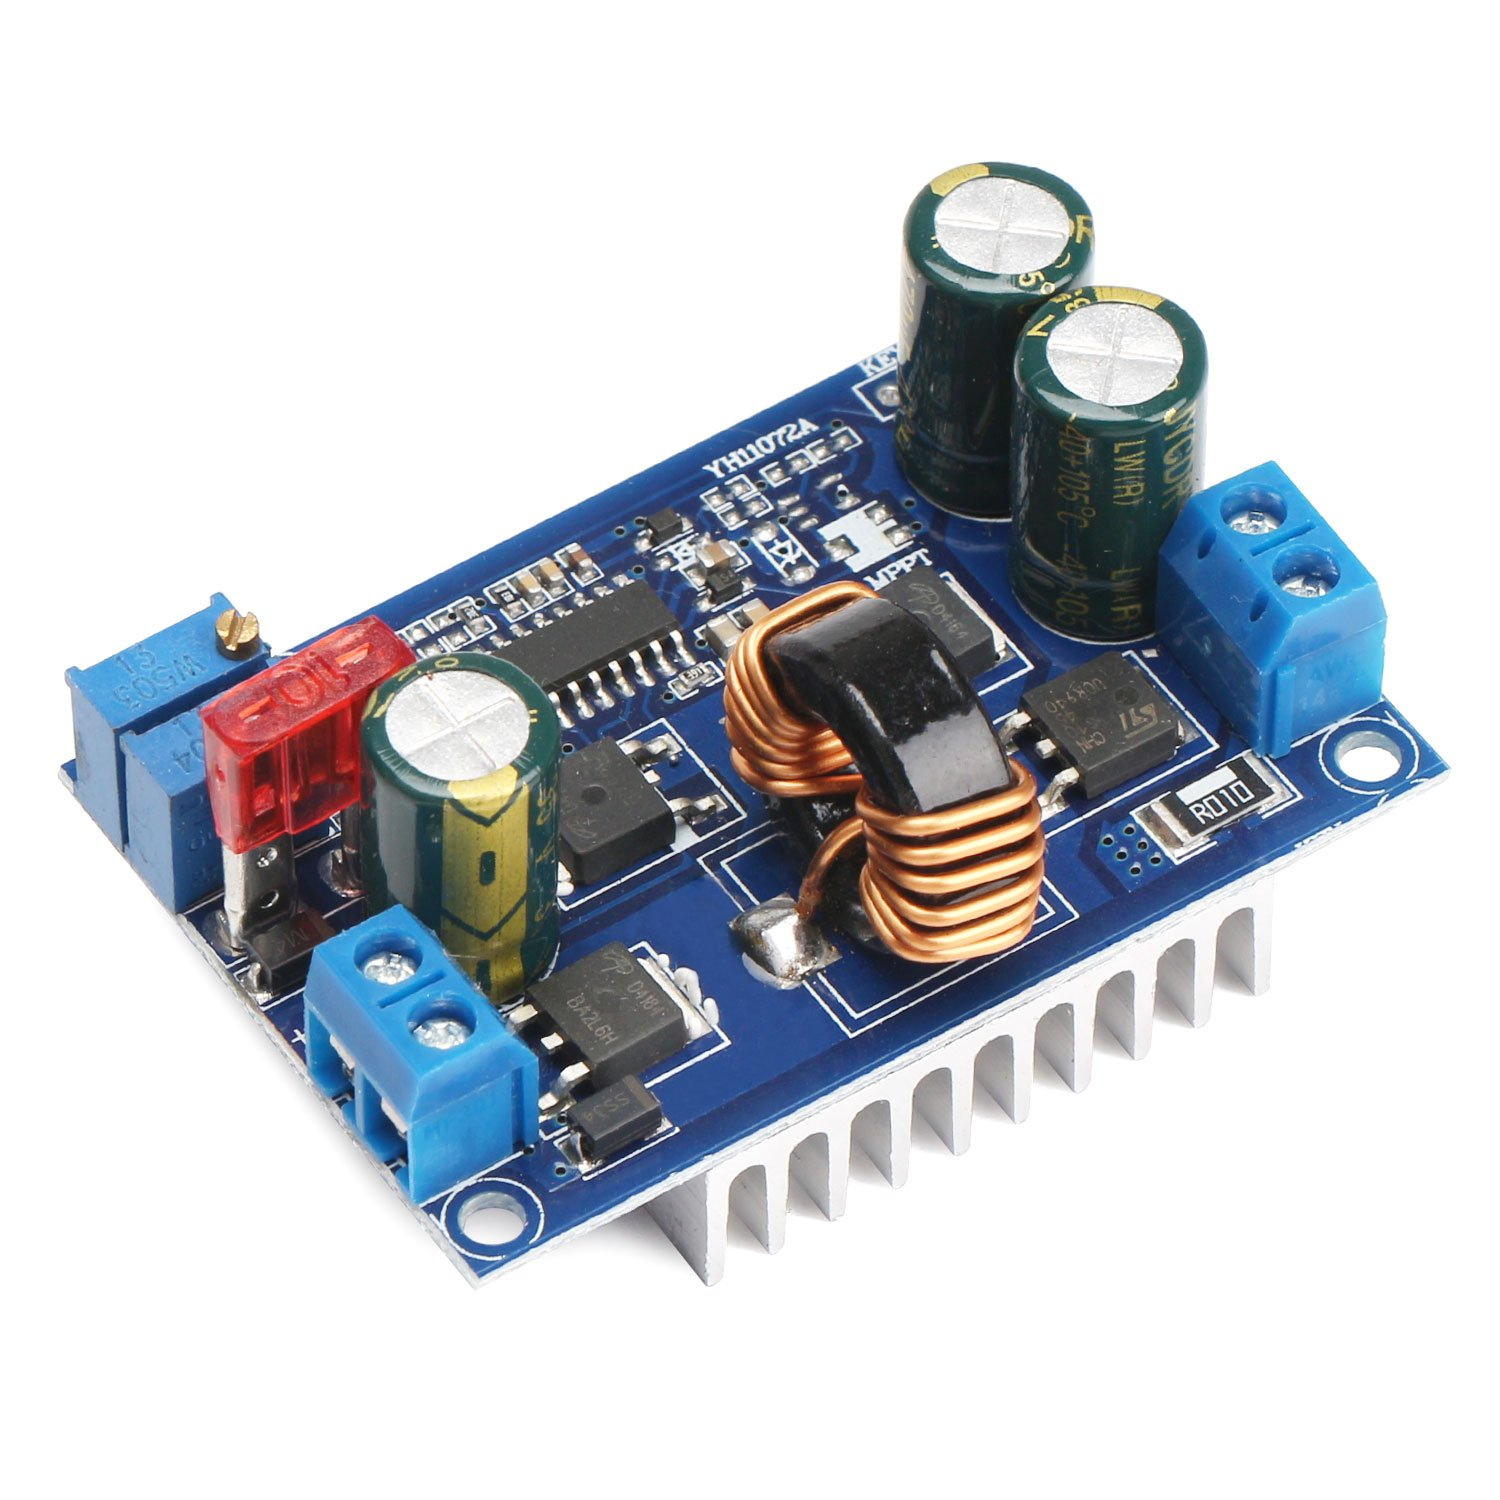 Drok Dc Automatic Boost Buck Converter Module 60w Fab1248 48volts Short Circuit Testing Build Constant Voltage Current Car Regulator Dc5 32v To 125 20v Industrial Scientific